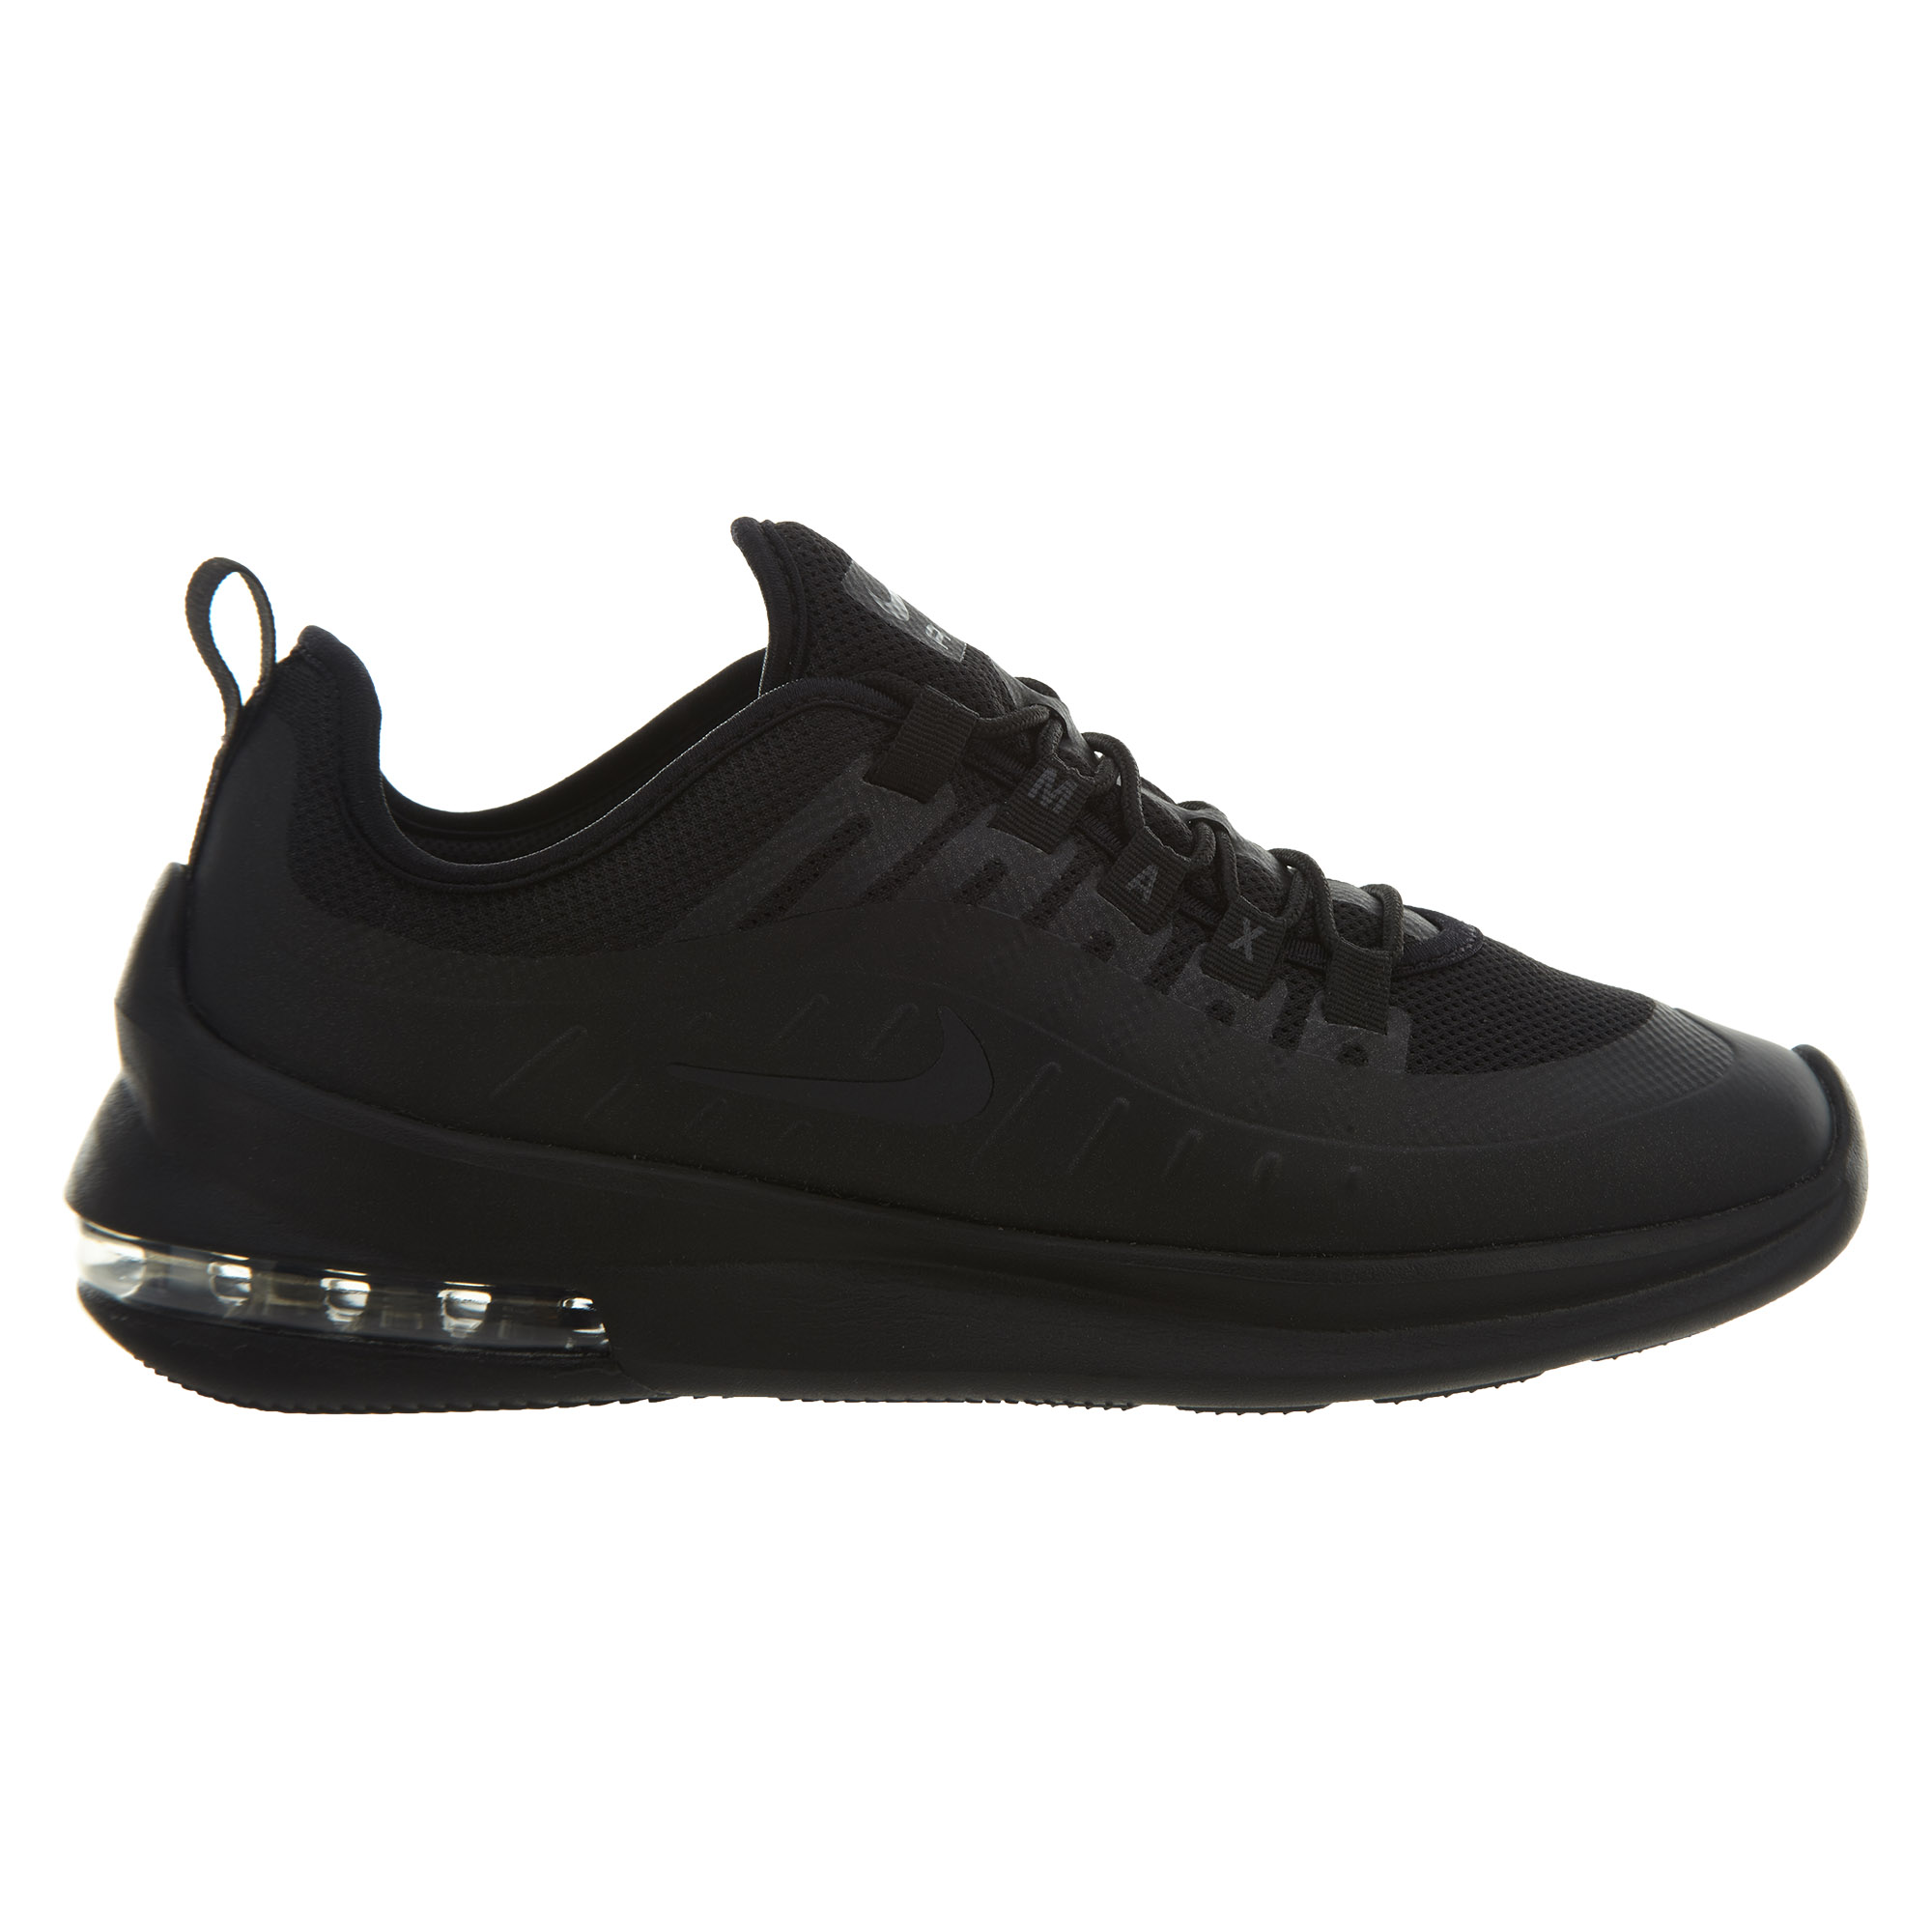 Nike Air Max Axis Black Anthracite